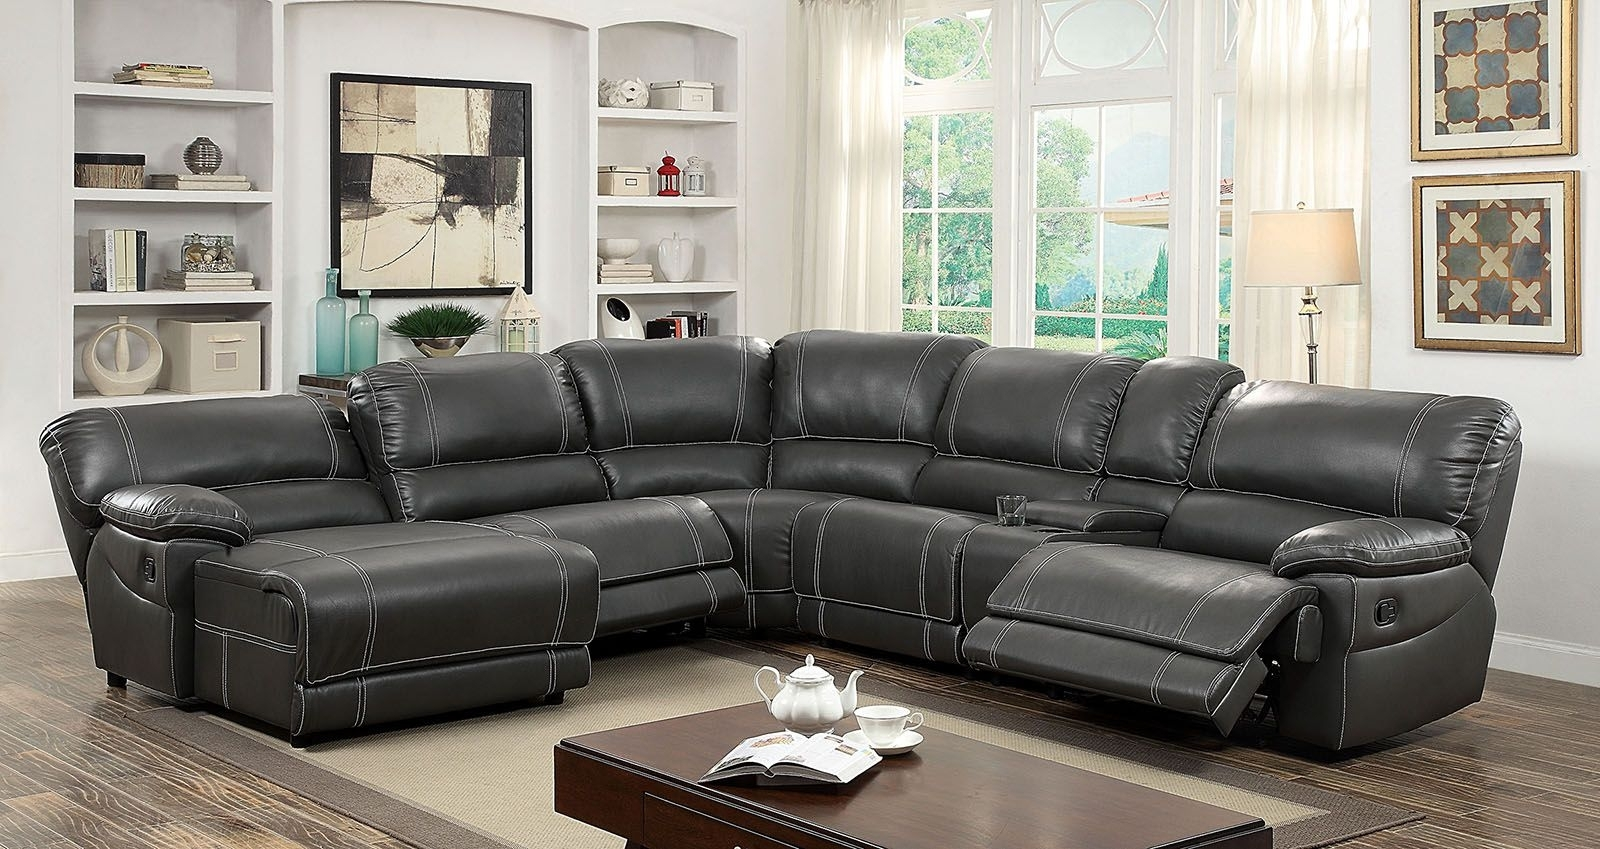 Grey Reclining Sectional - Tidex with regard to Denali Charcoal Grey 6 Piece Reclining Sectionals With 2 Power Headrests (Image 15 of 30)